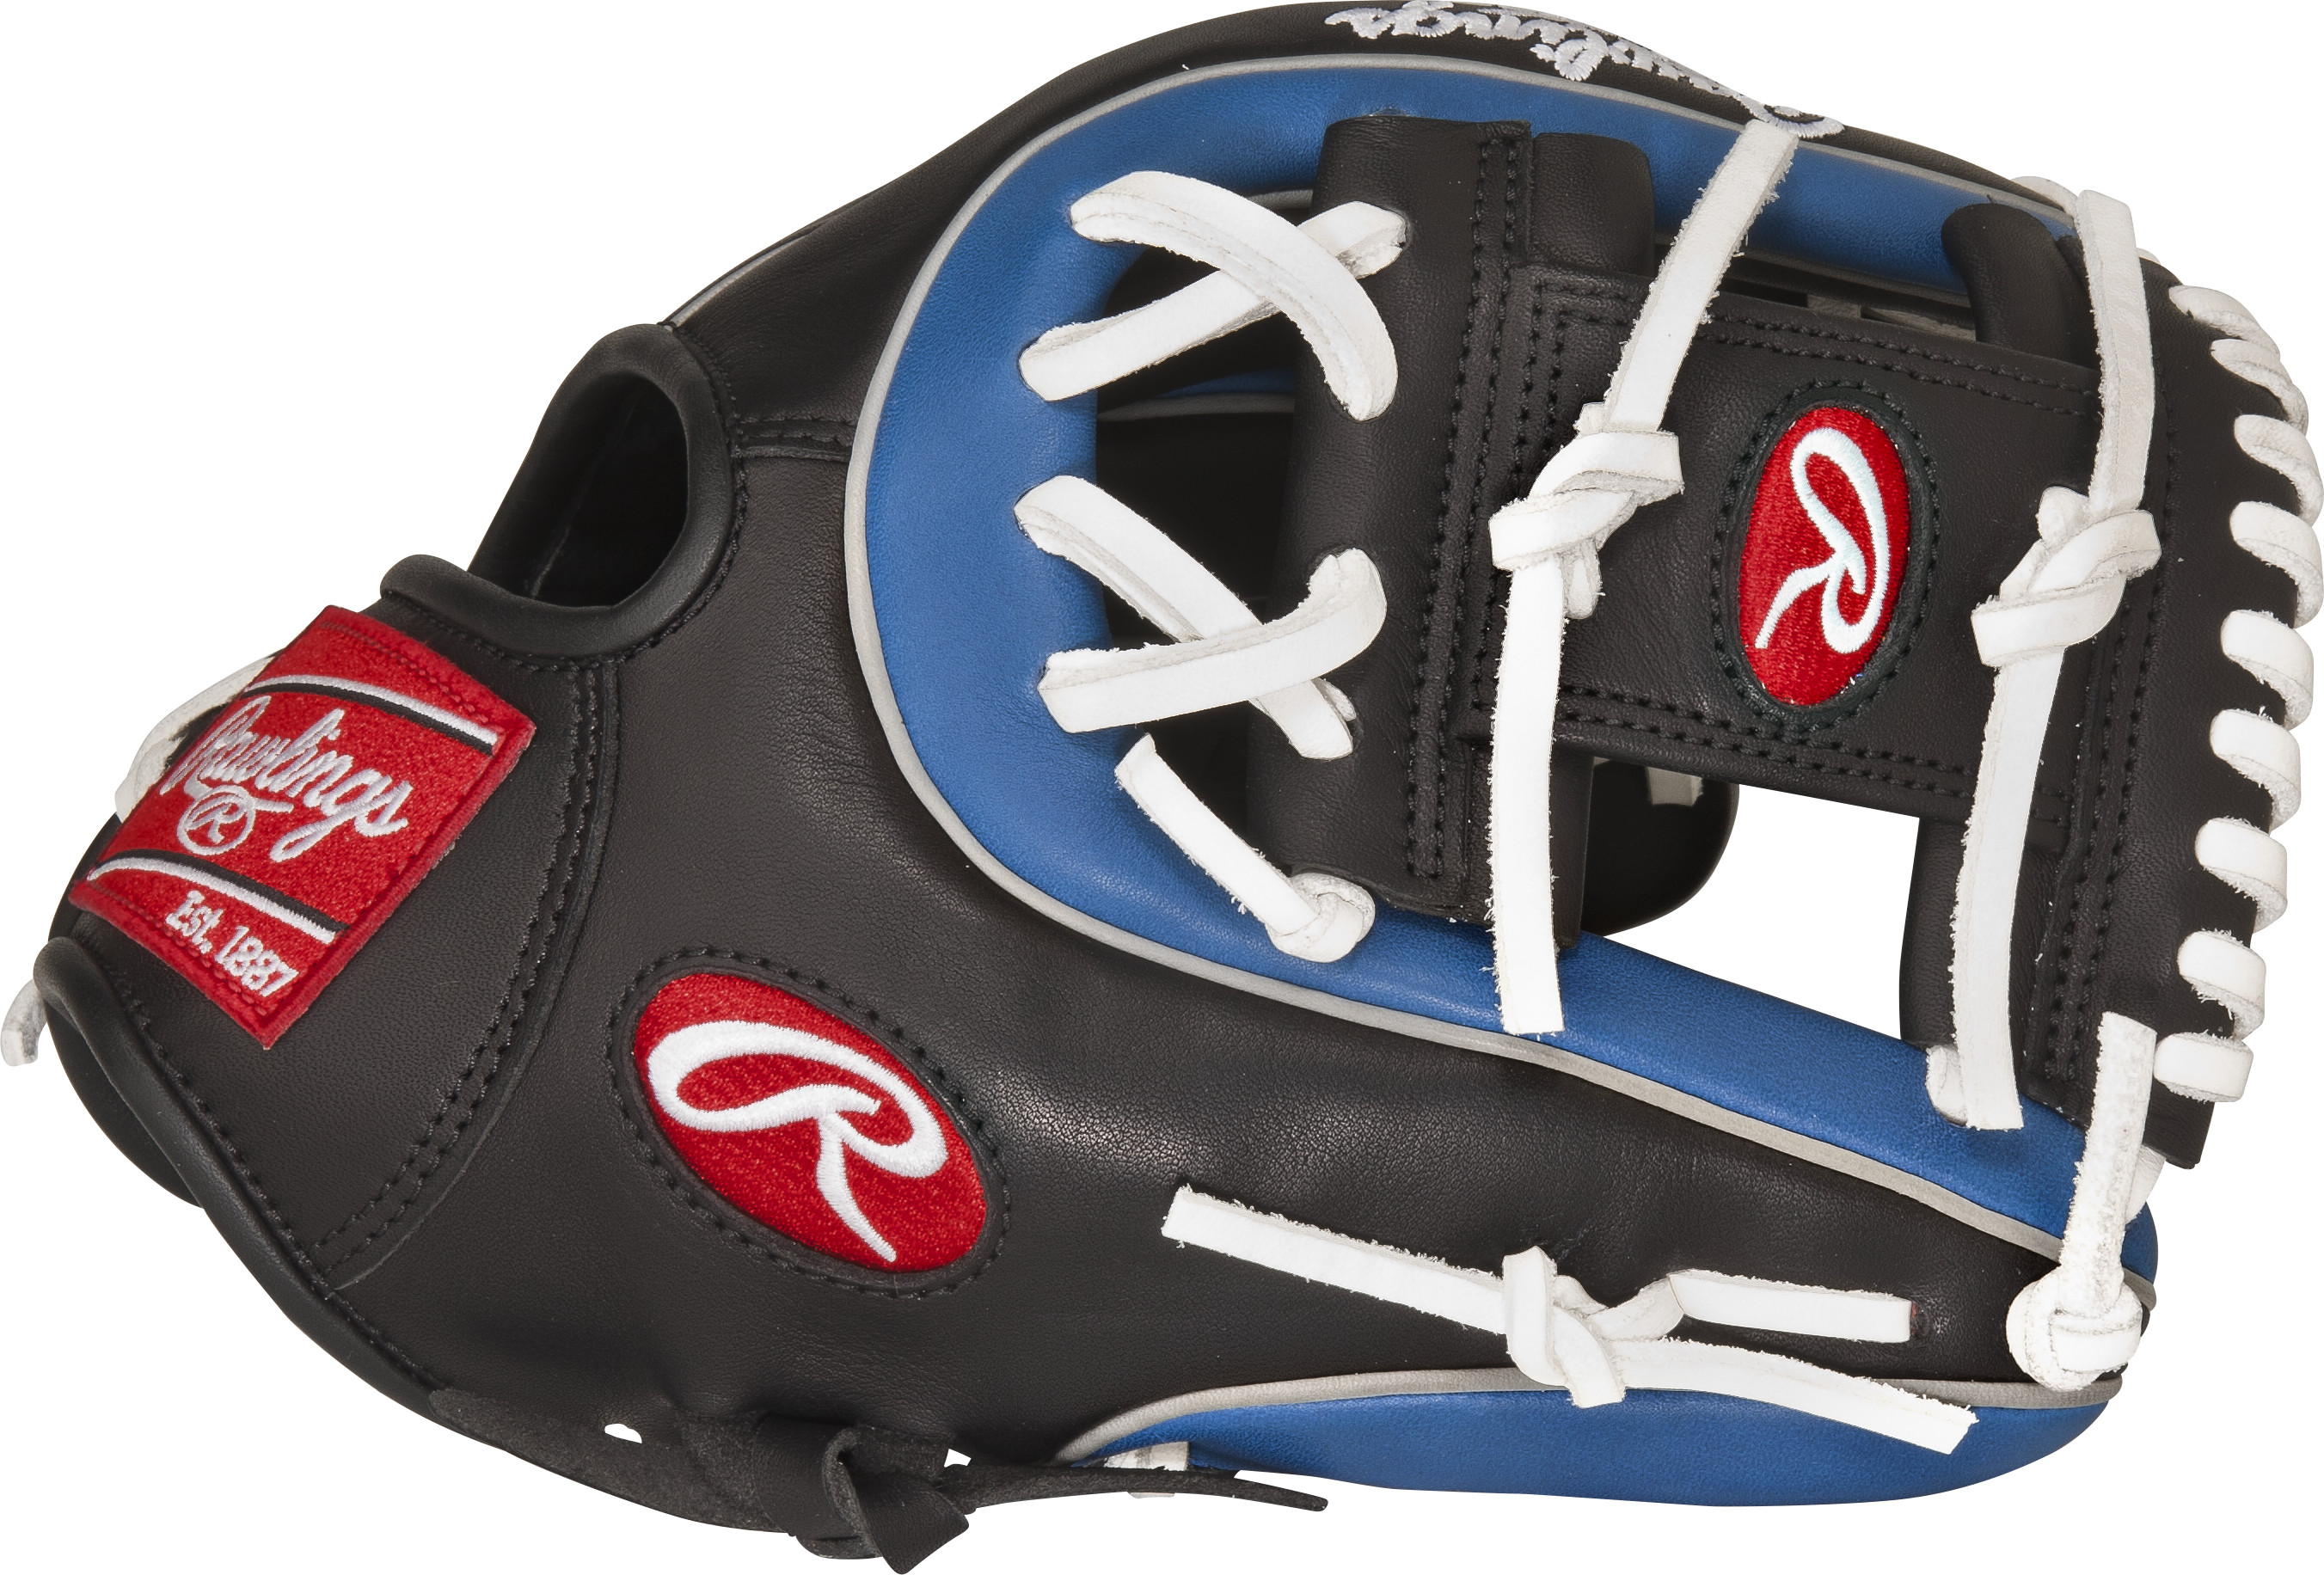 http://www.bestbatdeals.com/images/gloves/rawlings/GXLE312-2BR_thumb.jpg